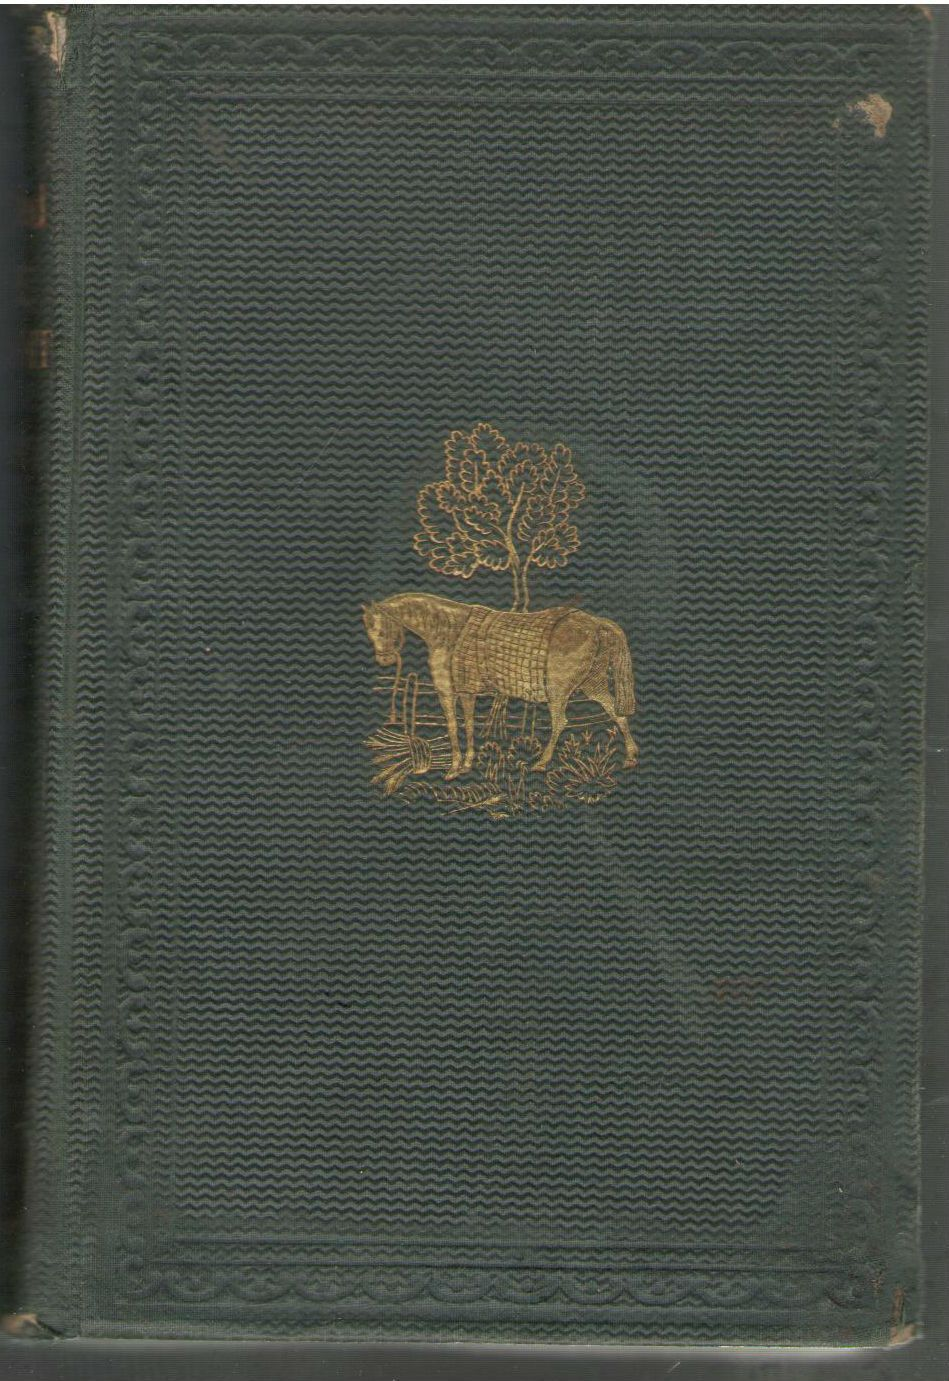 THE ILLUSTRATED HORSE MANAGEMENT; containing descriptive remarks upon Anatomy; Medicine; Shoeing; Teeth; Food; Vices; Stables; likewise an account of The Situation, Nature and Value of the various Points; together with comments on Grooms - Dealers - Breed, Edward Mayhew